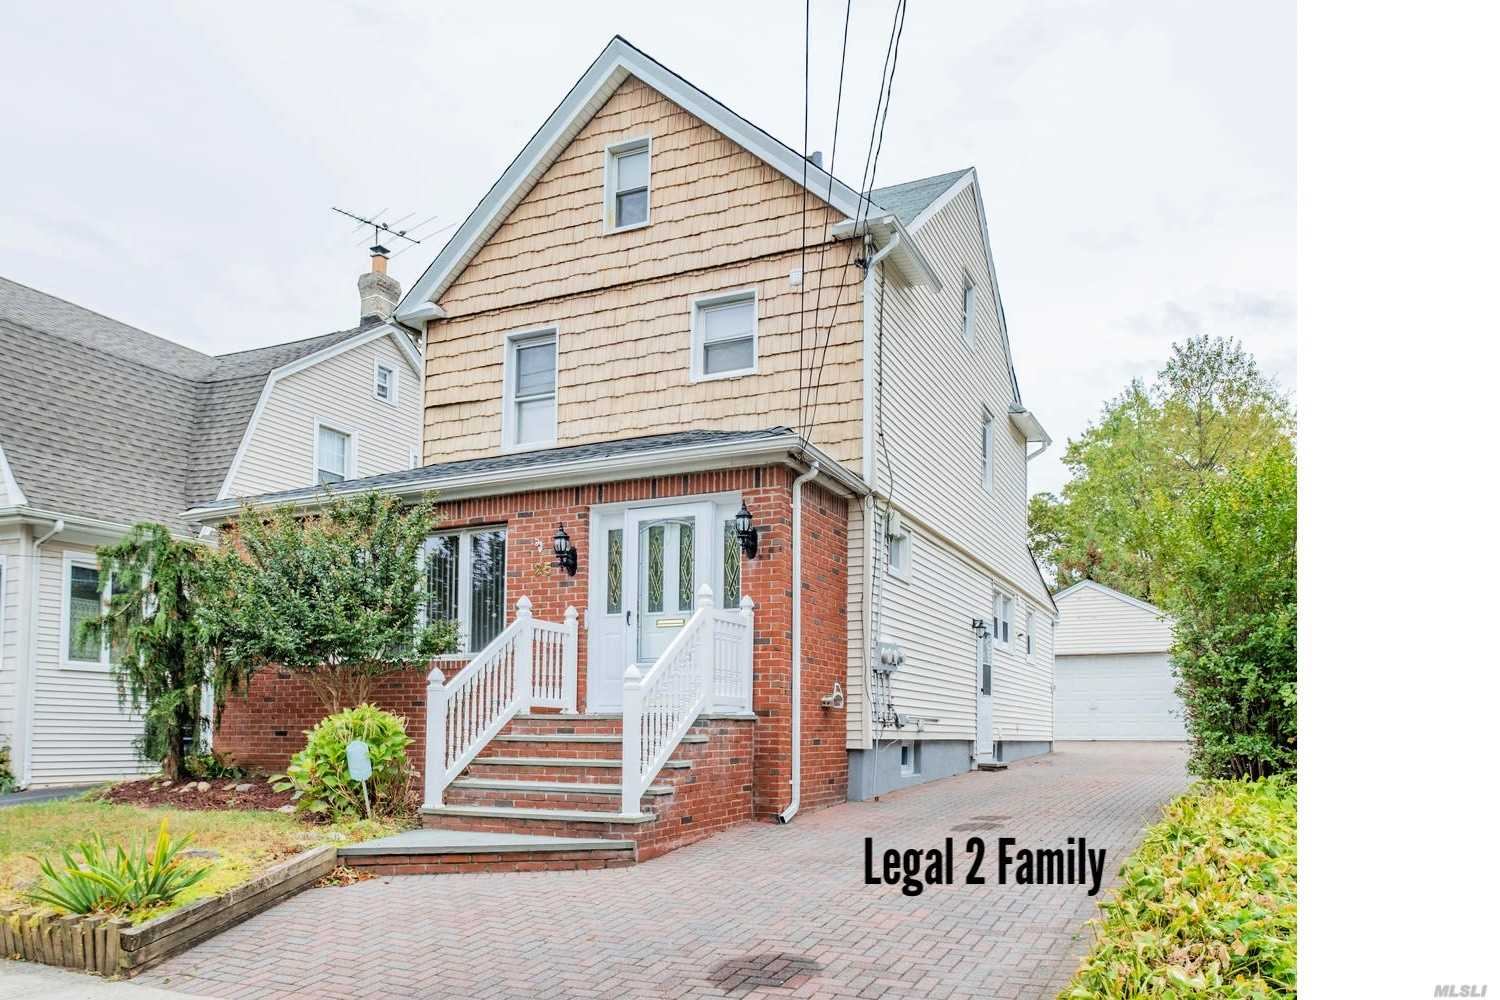 Property for sale at 25 Daisy Avenue, Floral Park NY 11001, Floral Park,  New York 11001